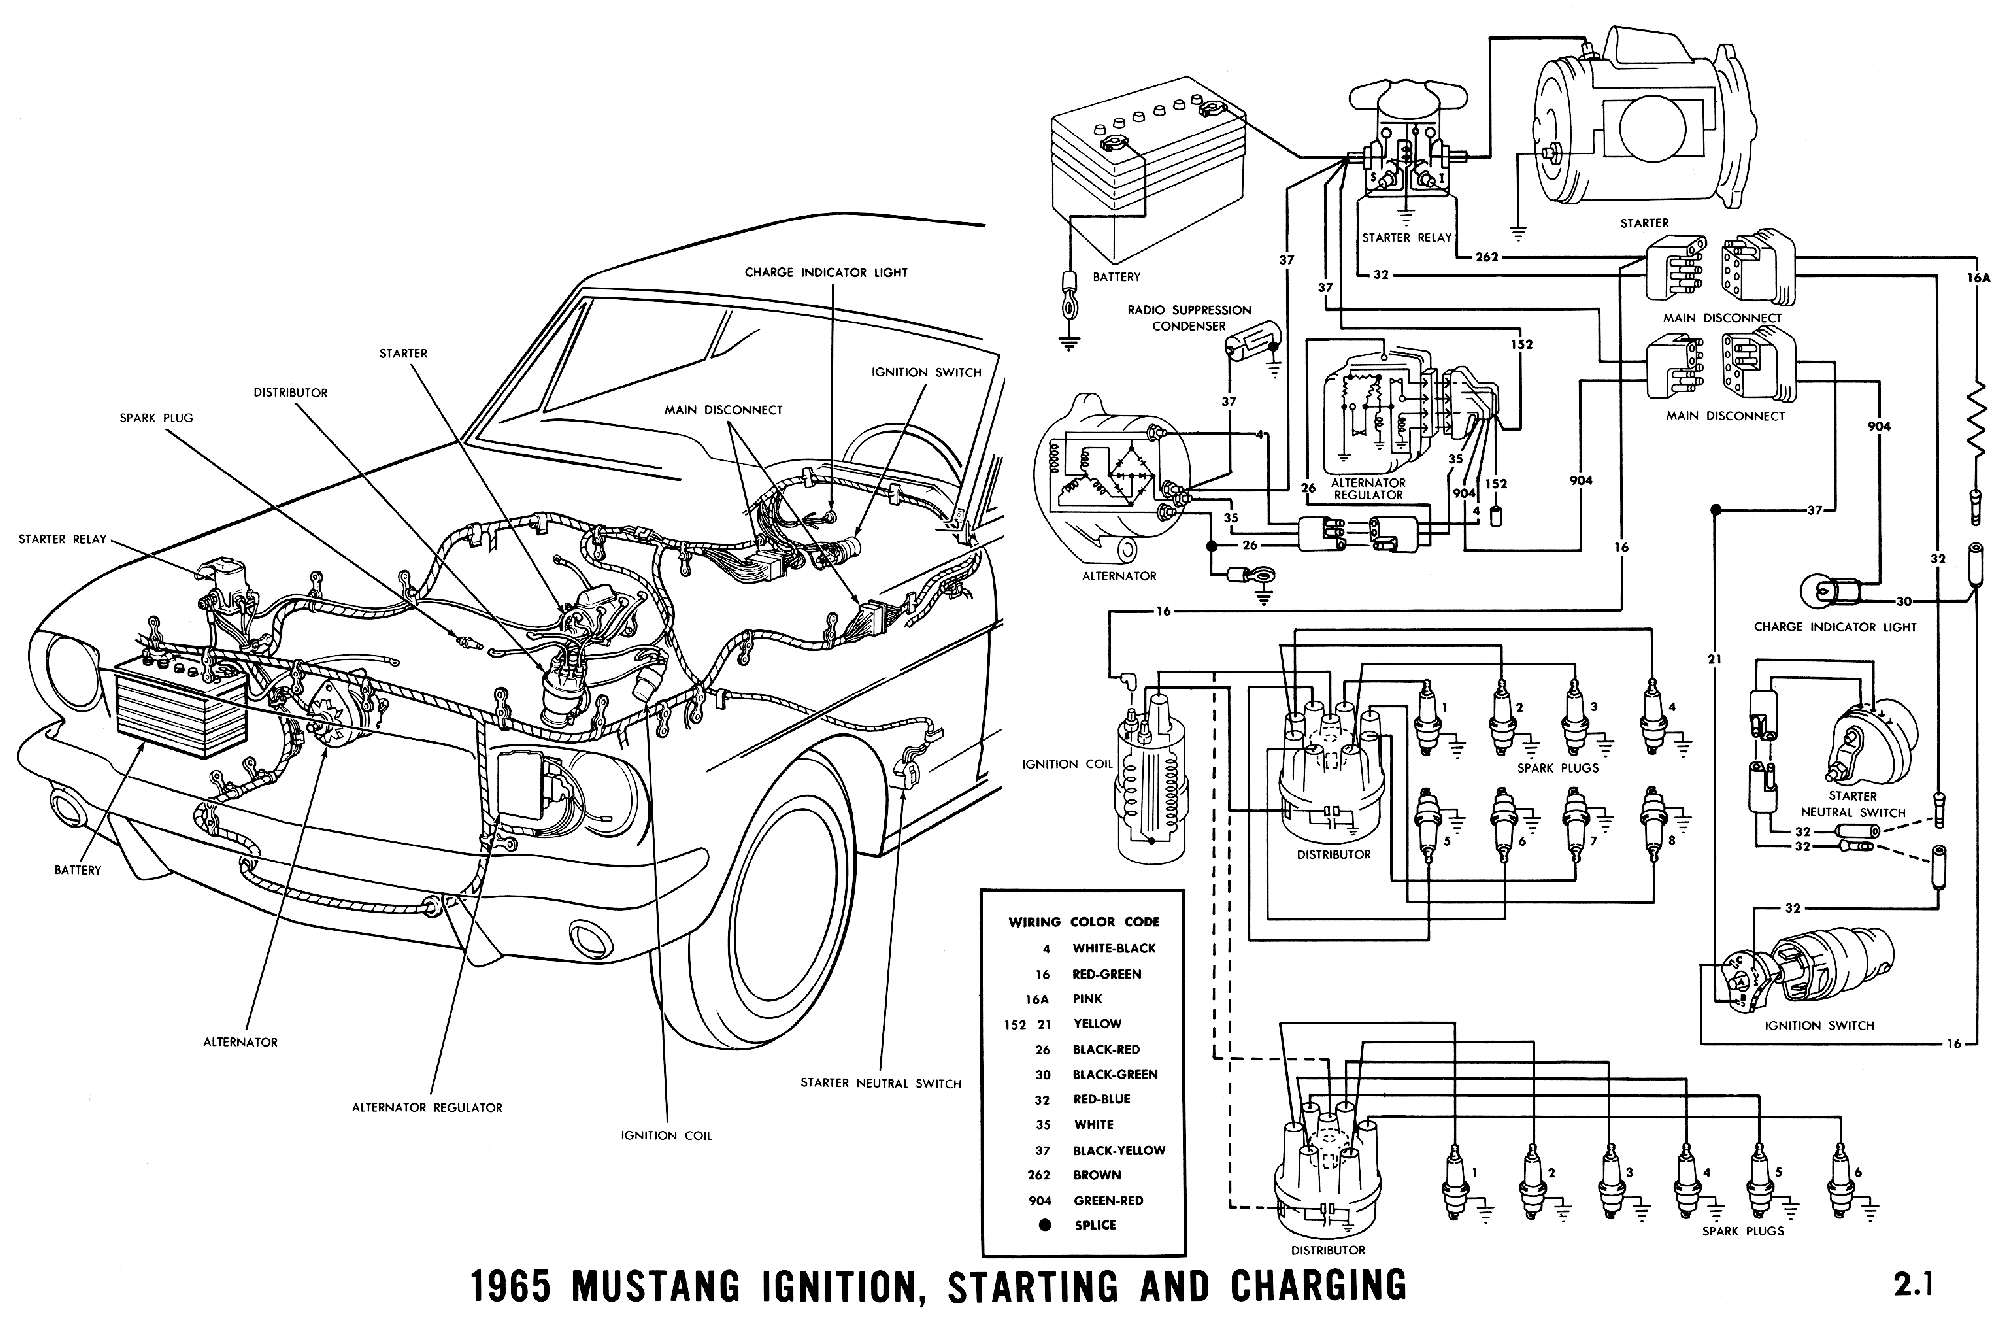 1965 Mustang Wiring Diagrams Average Joe Restoration Automotive Charging Pictorial And Schematic